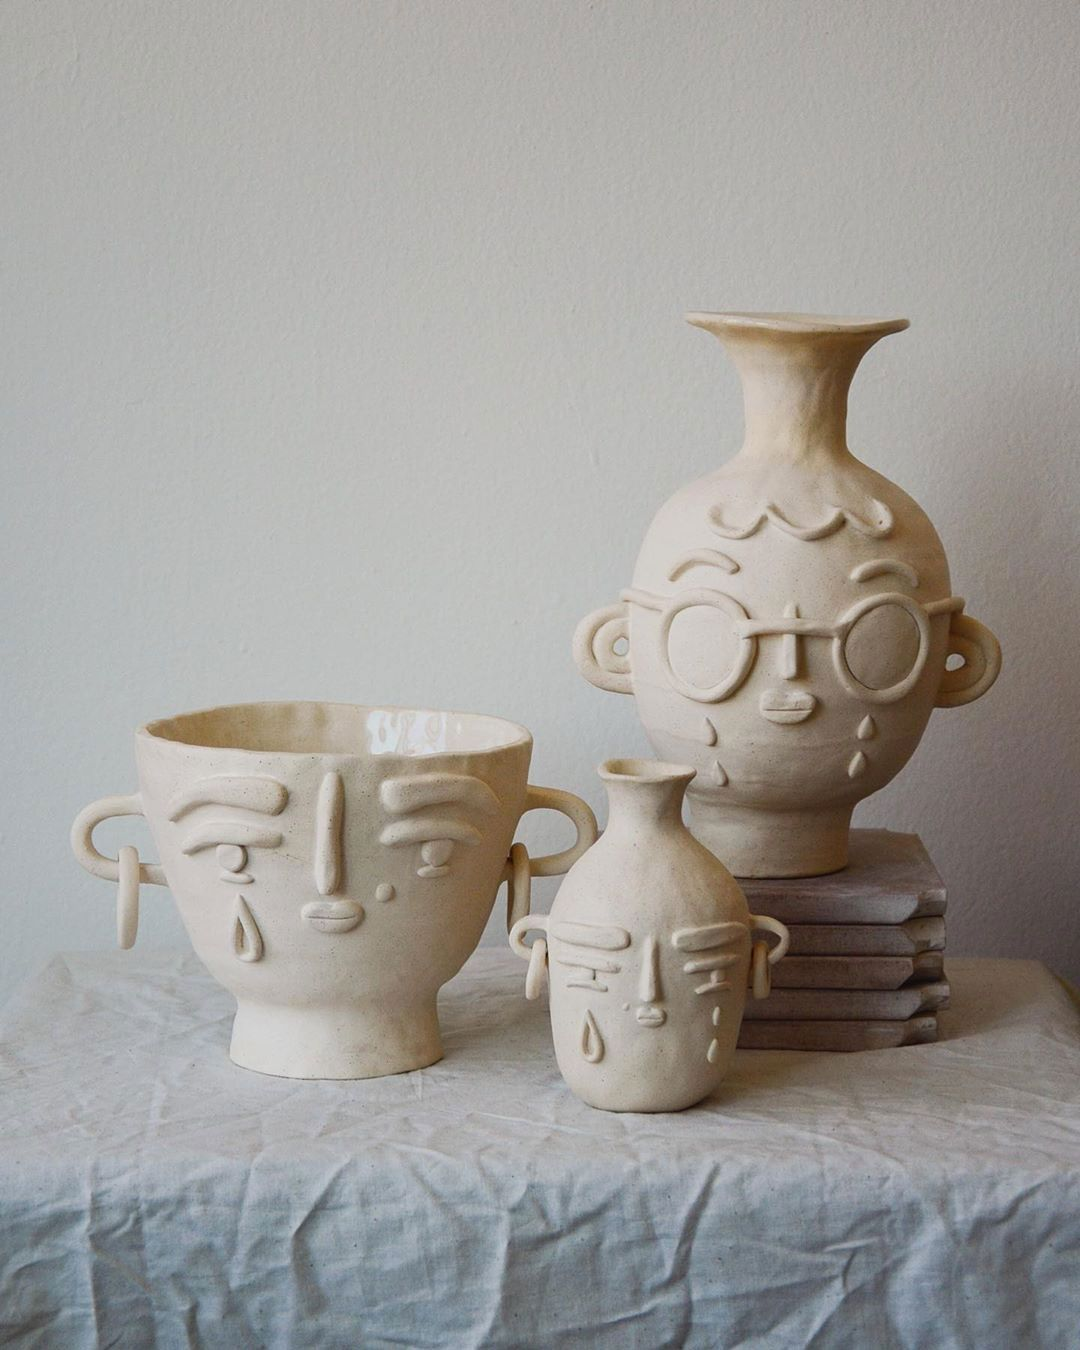 A few ceramic artists whose work I'm loving right now